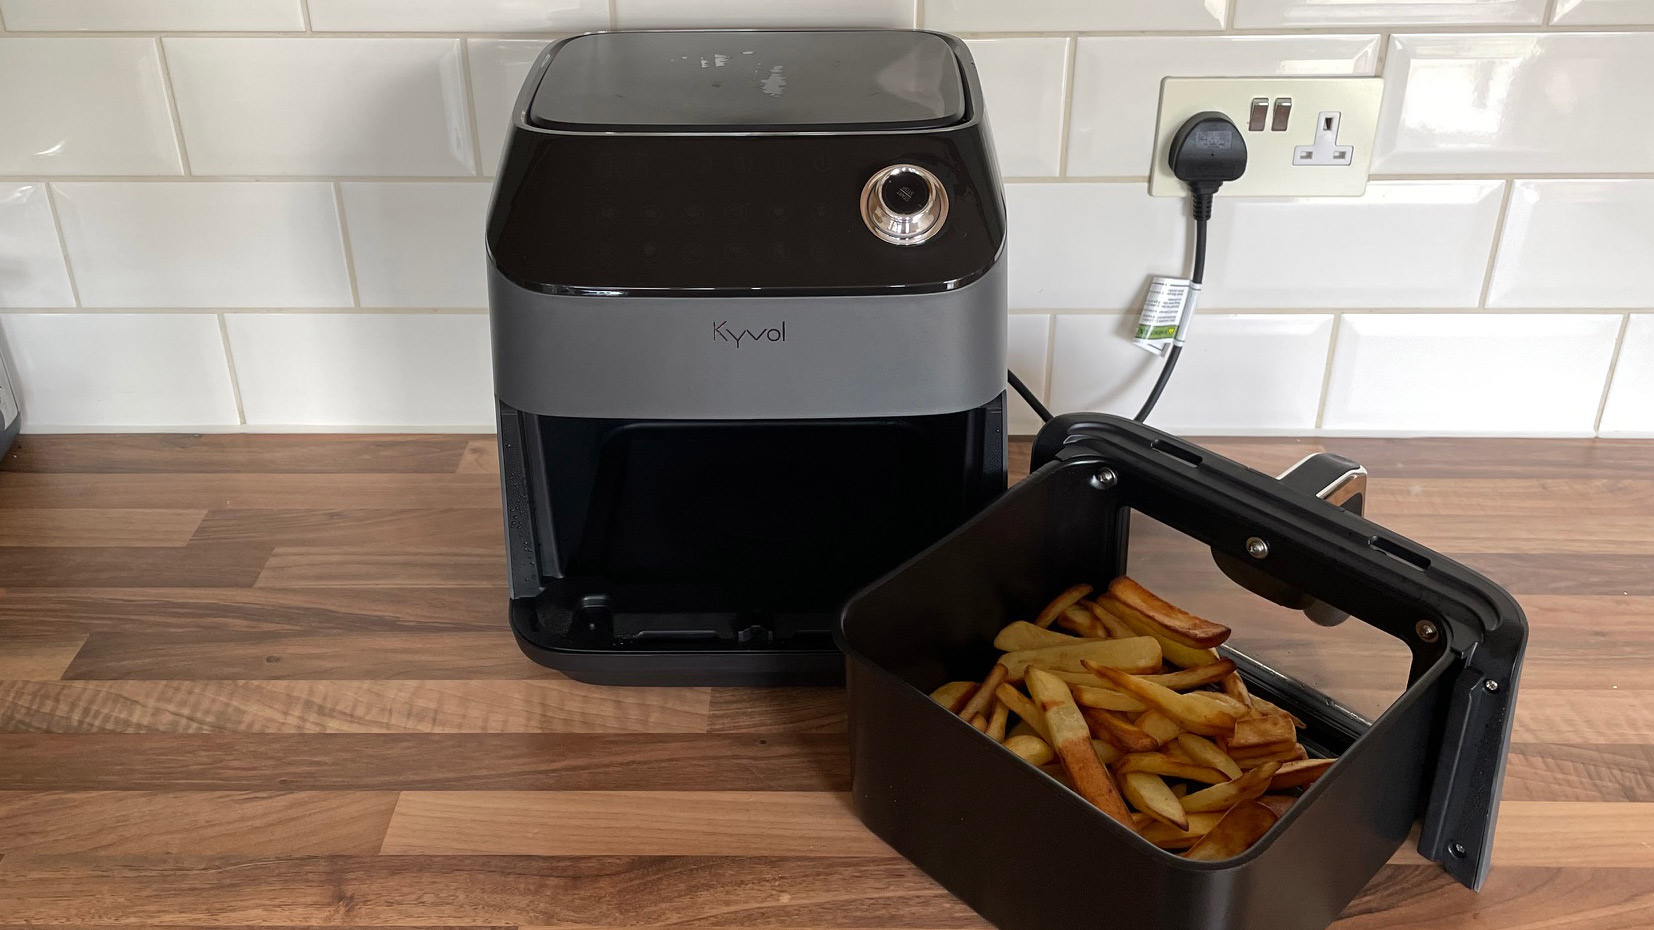 Kyvol AF600 Air Fryer on a kitchen countettop with fries in the frying basket